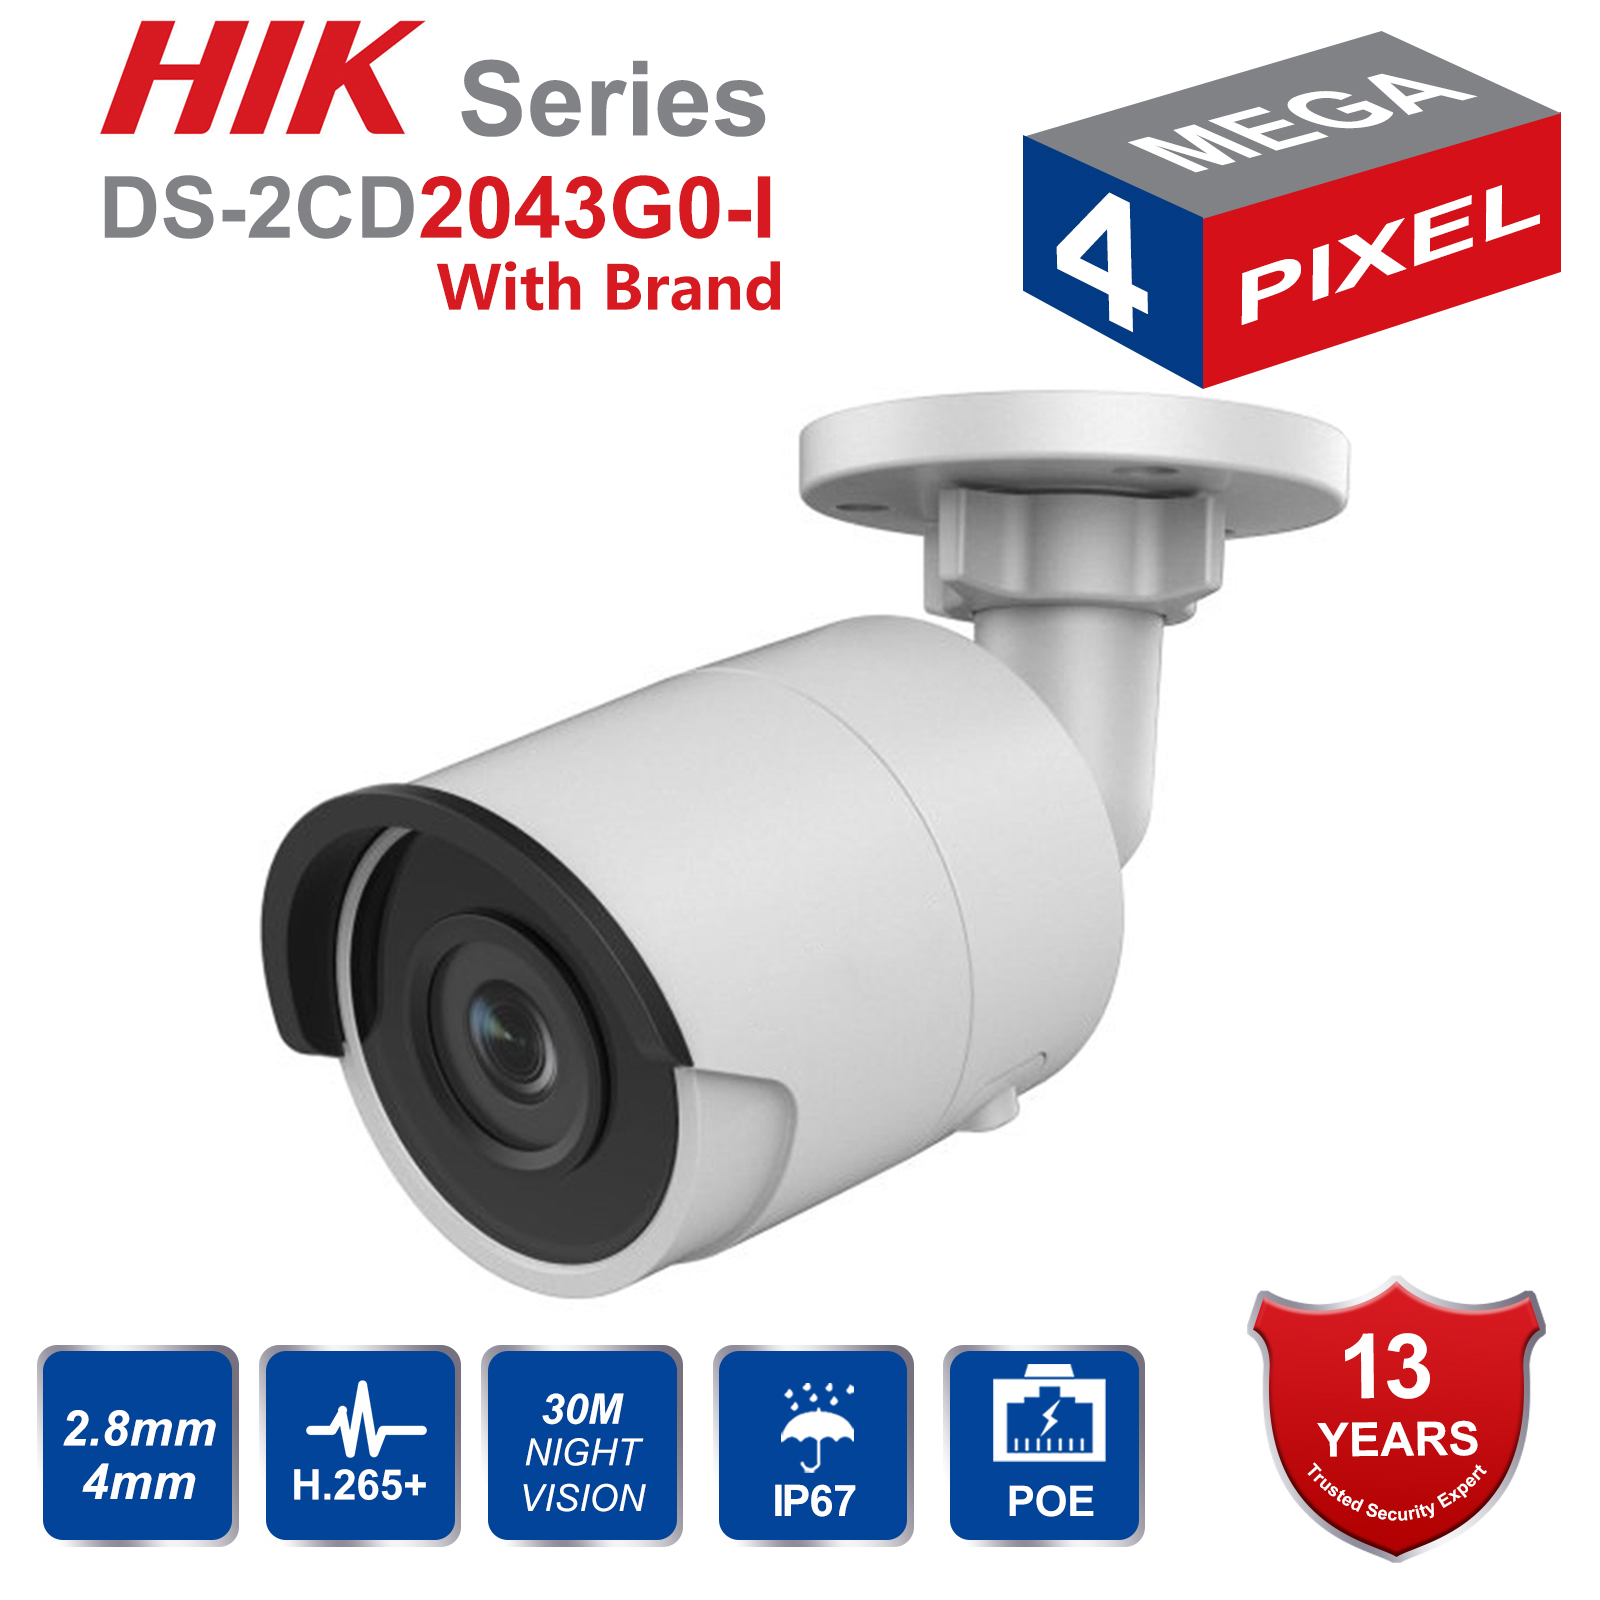 In Stock Hik Original English DS 2CD2043G0 I 4MP Network Bullet Camera Security System upgrade DS